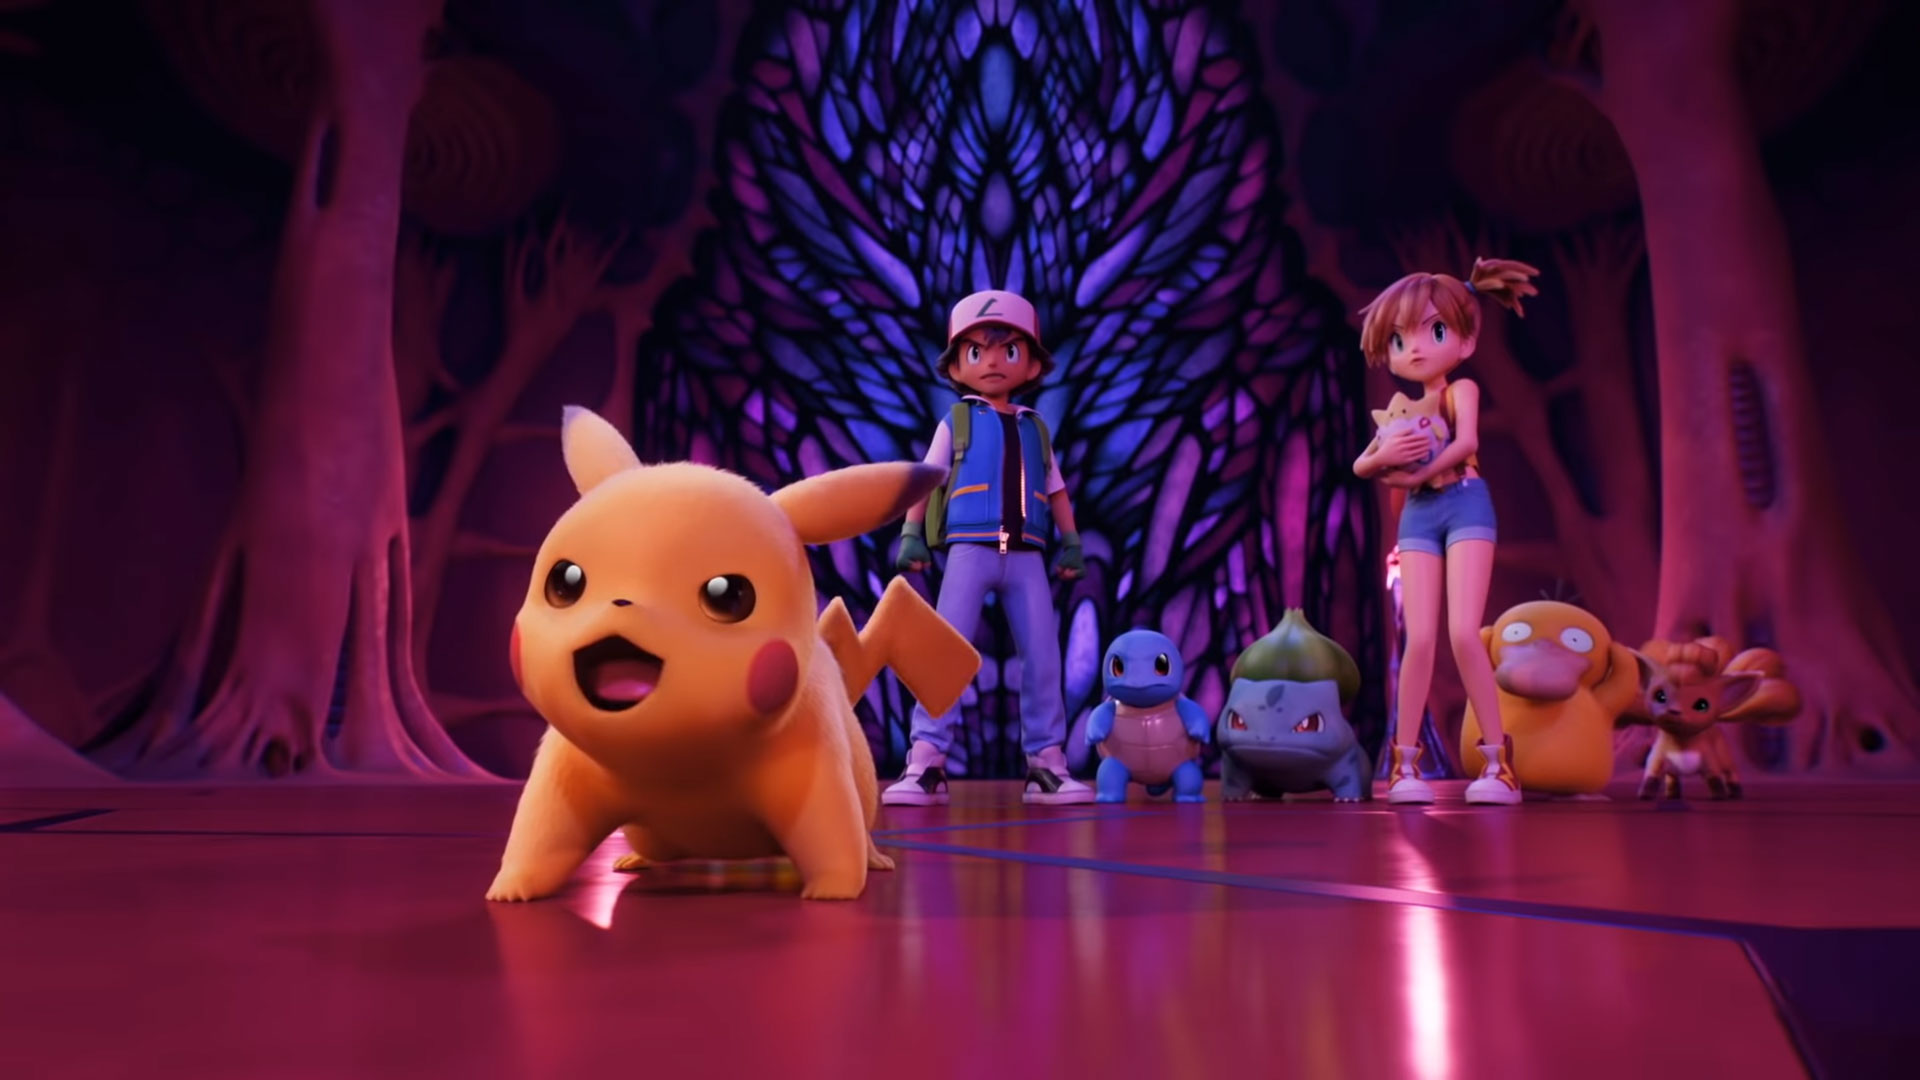 Pokemon(CG remake) : Mewtwo strikes back Evolution is hitting Netflix this month